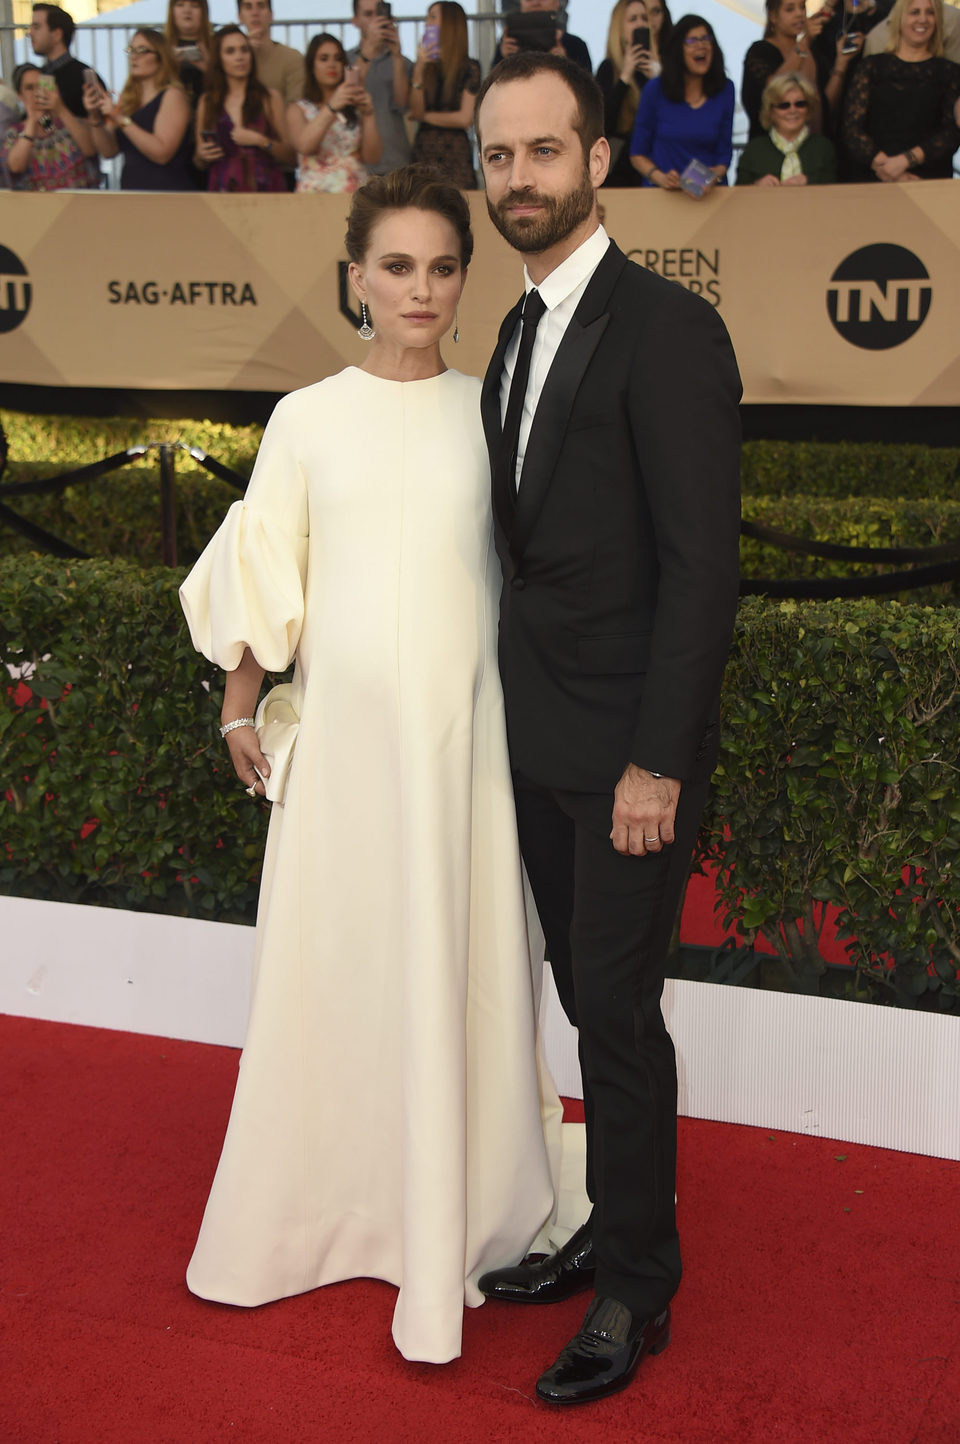 Natalie Portman and Benjamin Millepied on the red carpet of SAG Awards 2017